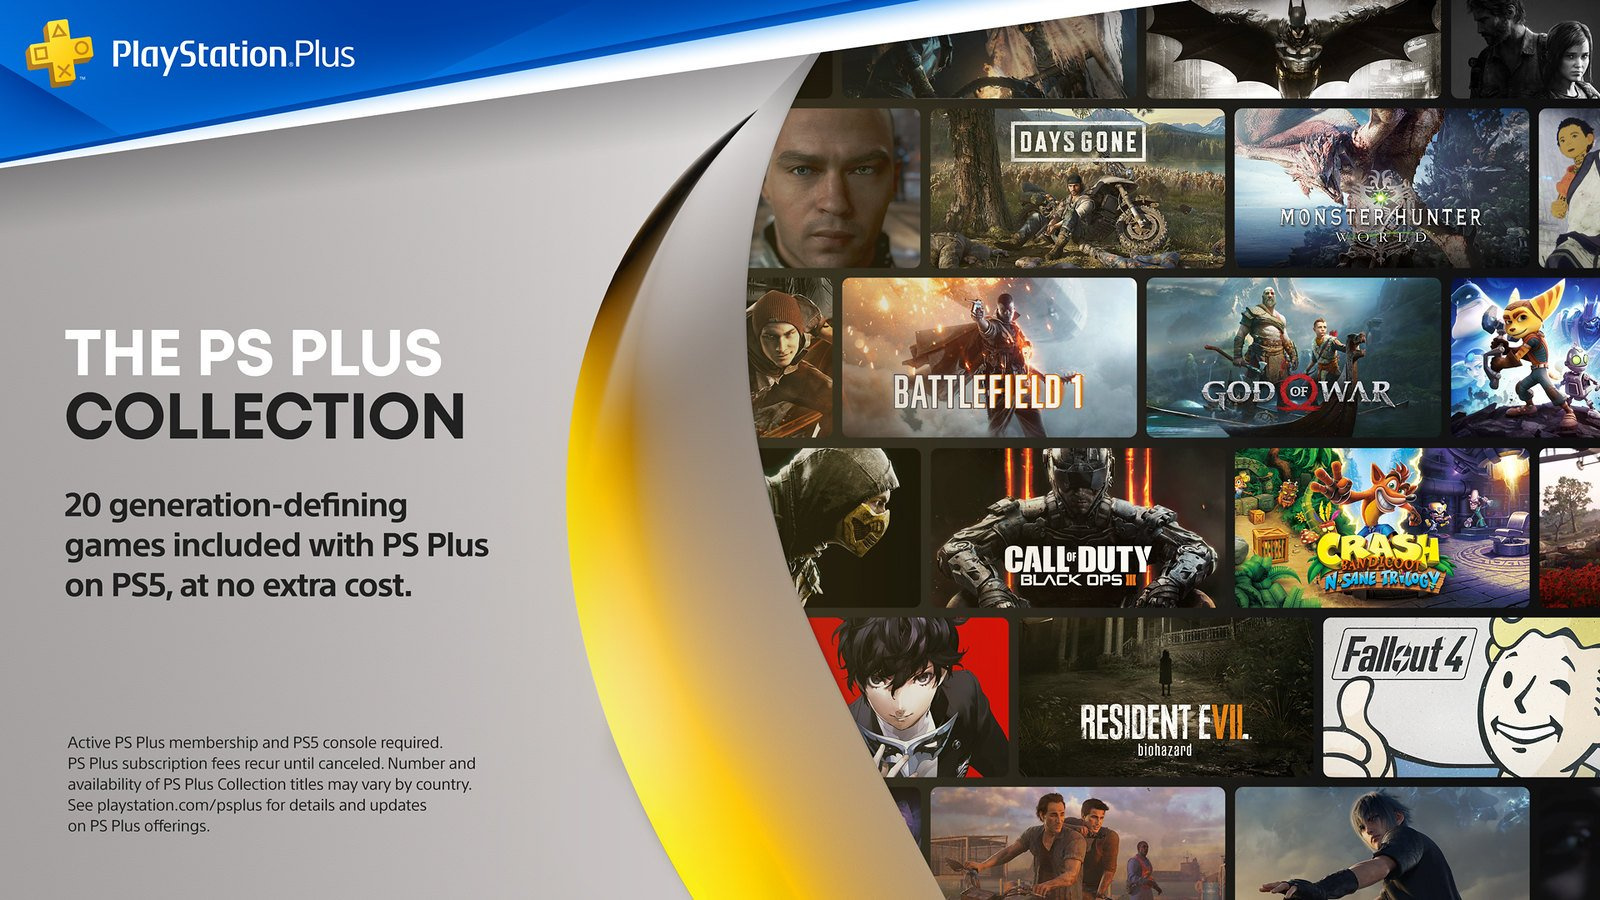 Sony says it's yet to decide if it will expand the PlayStation Plus Collection | VGC